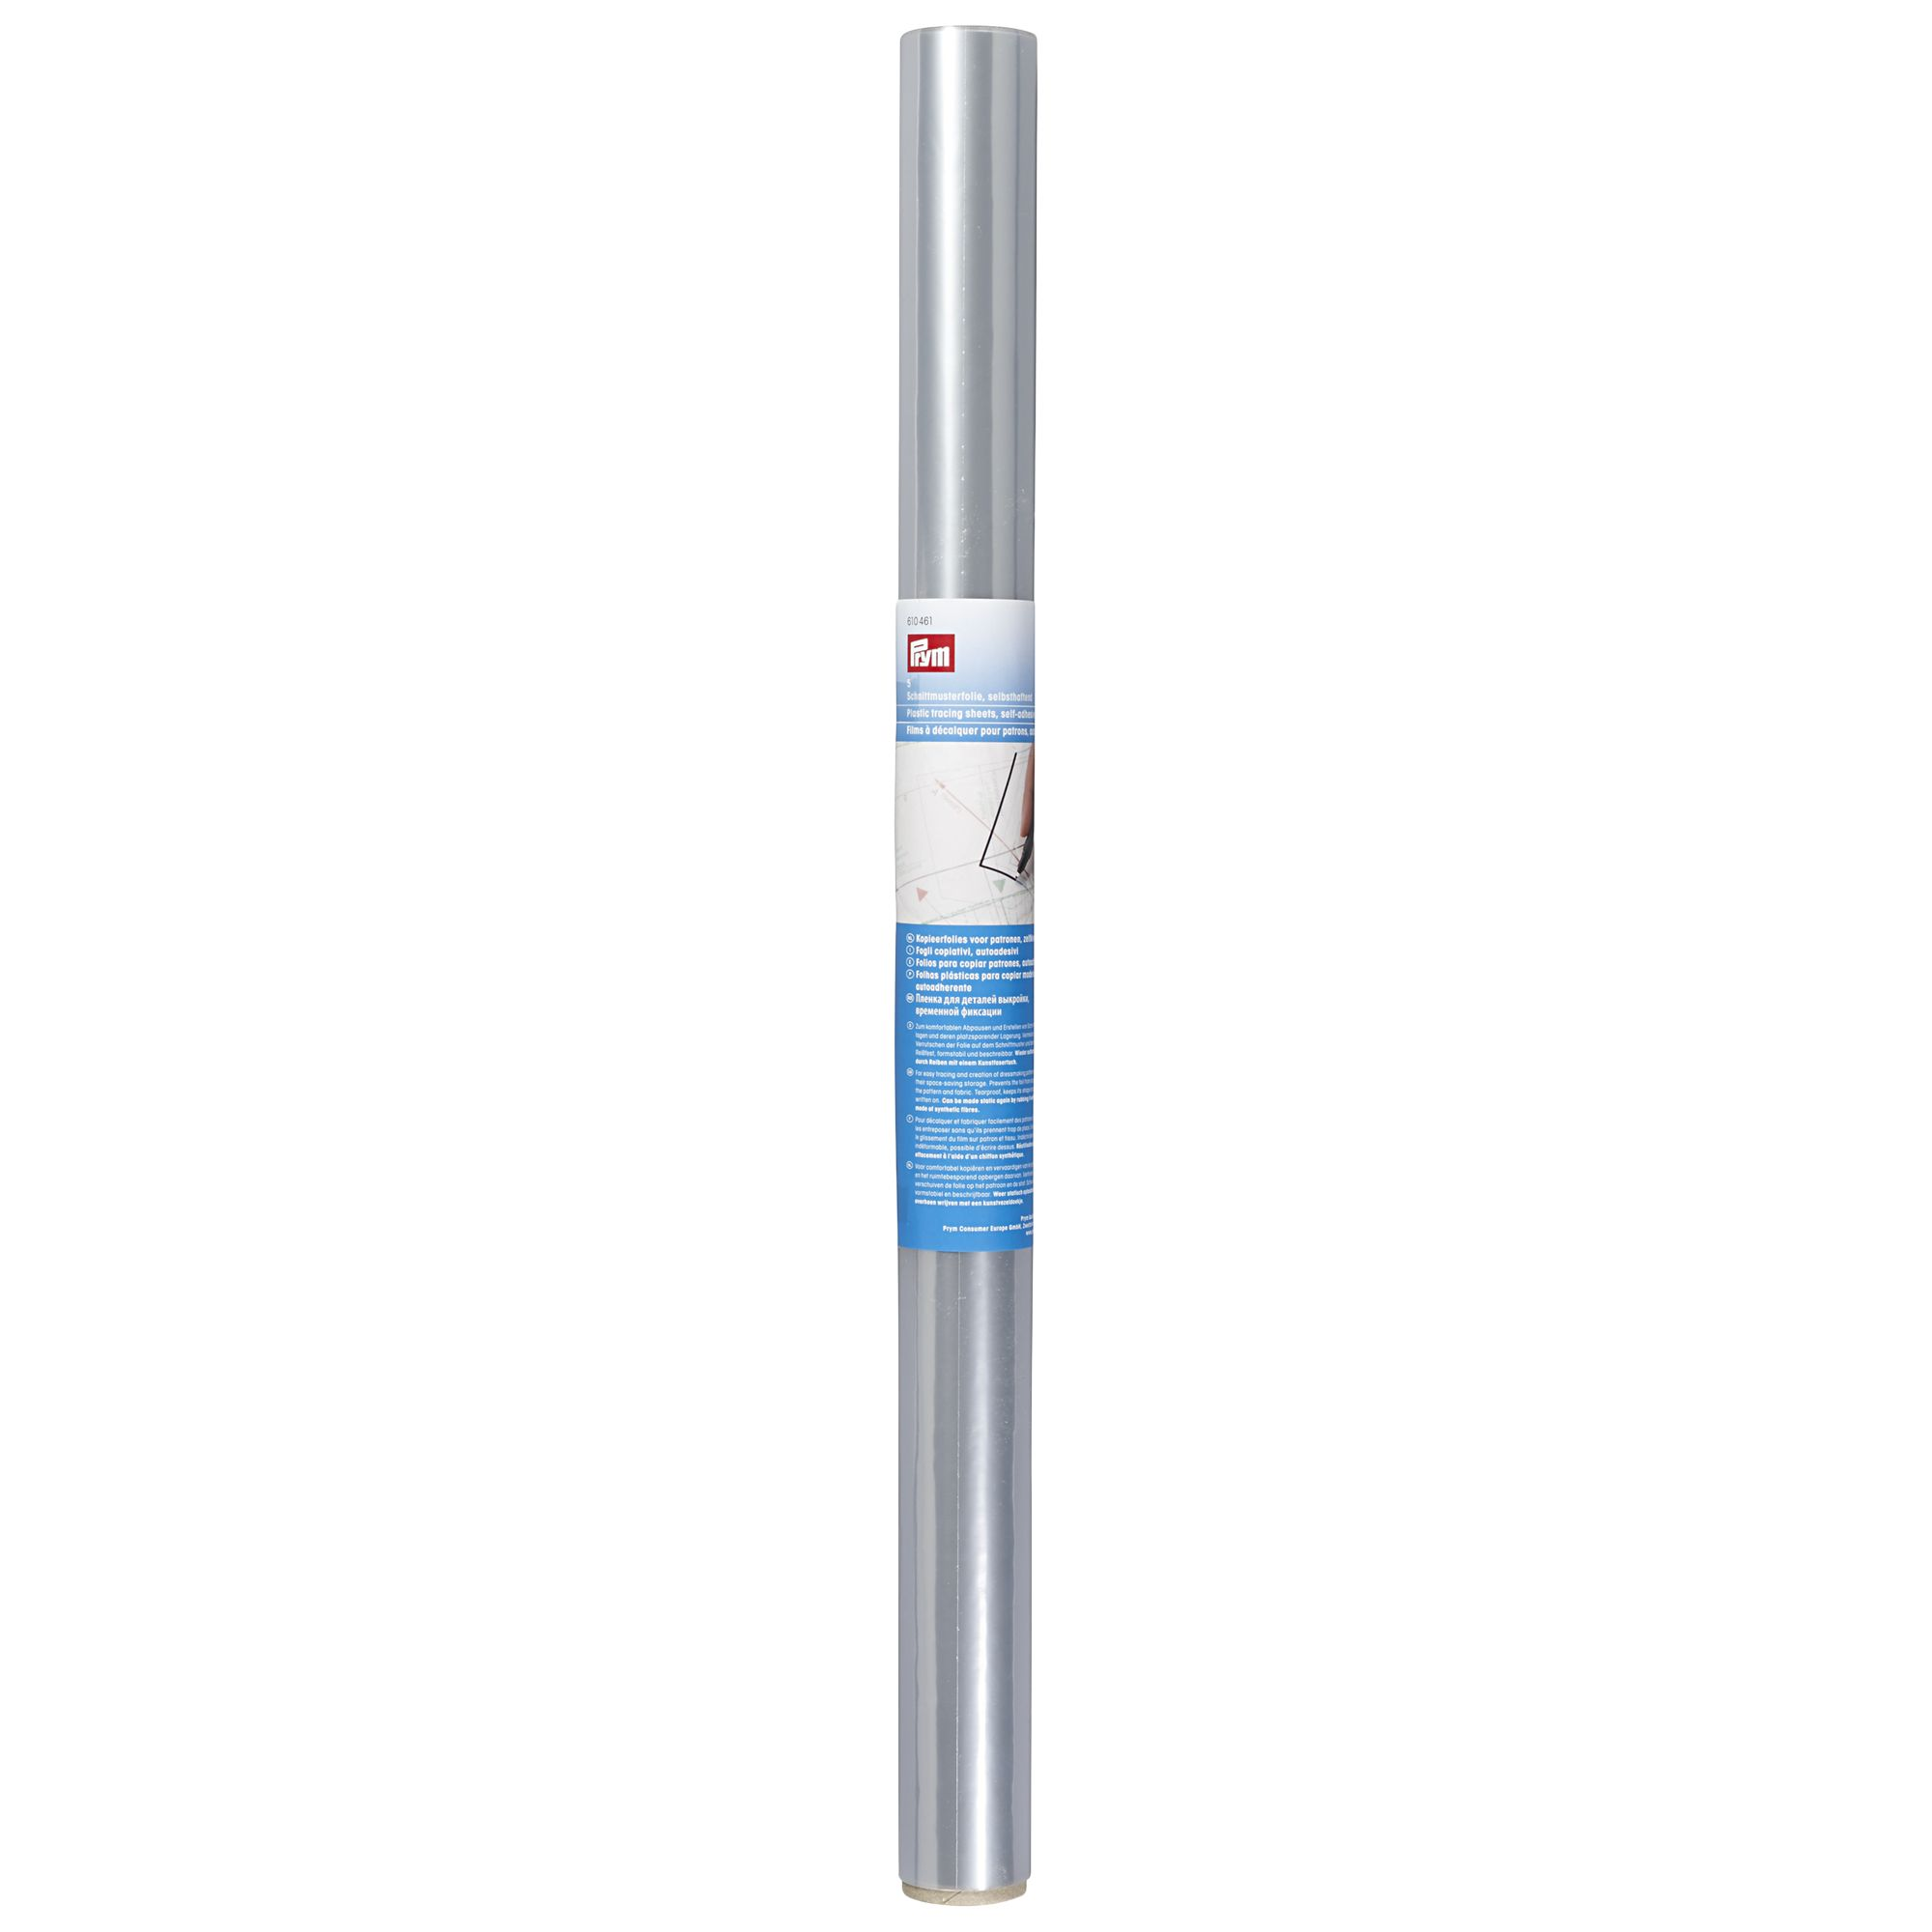 Prym Prym Tracing Sheets, Pack of 5